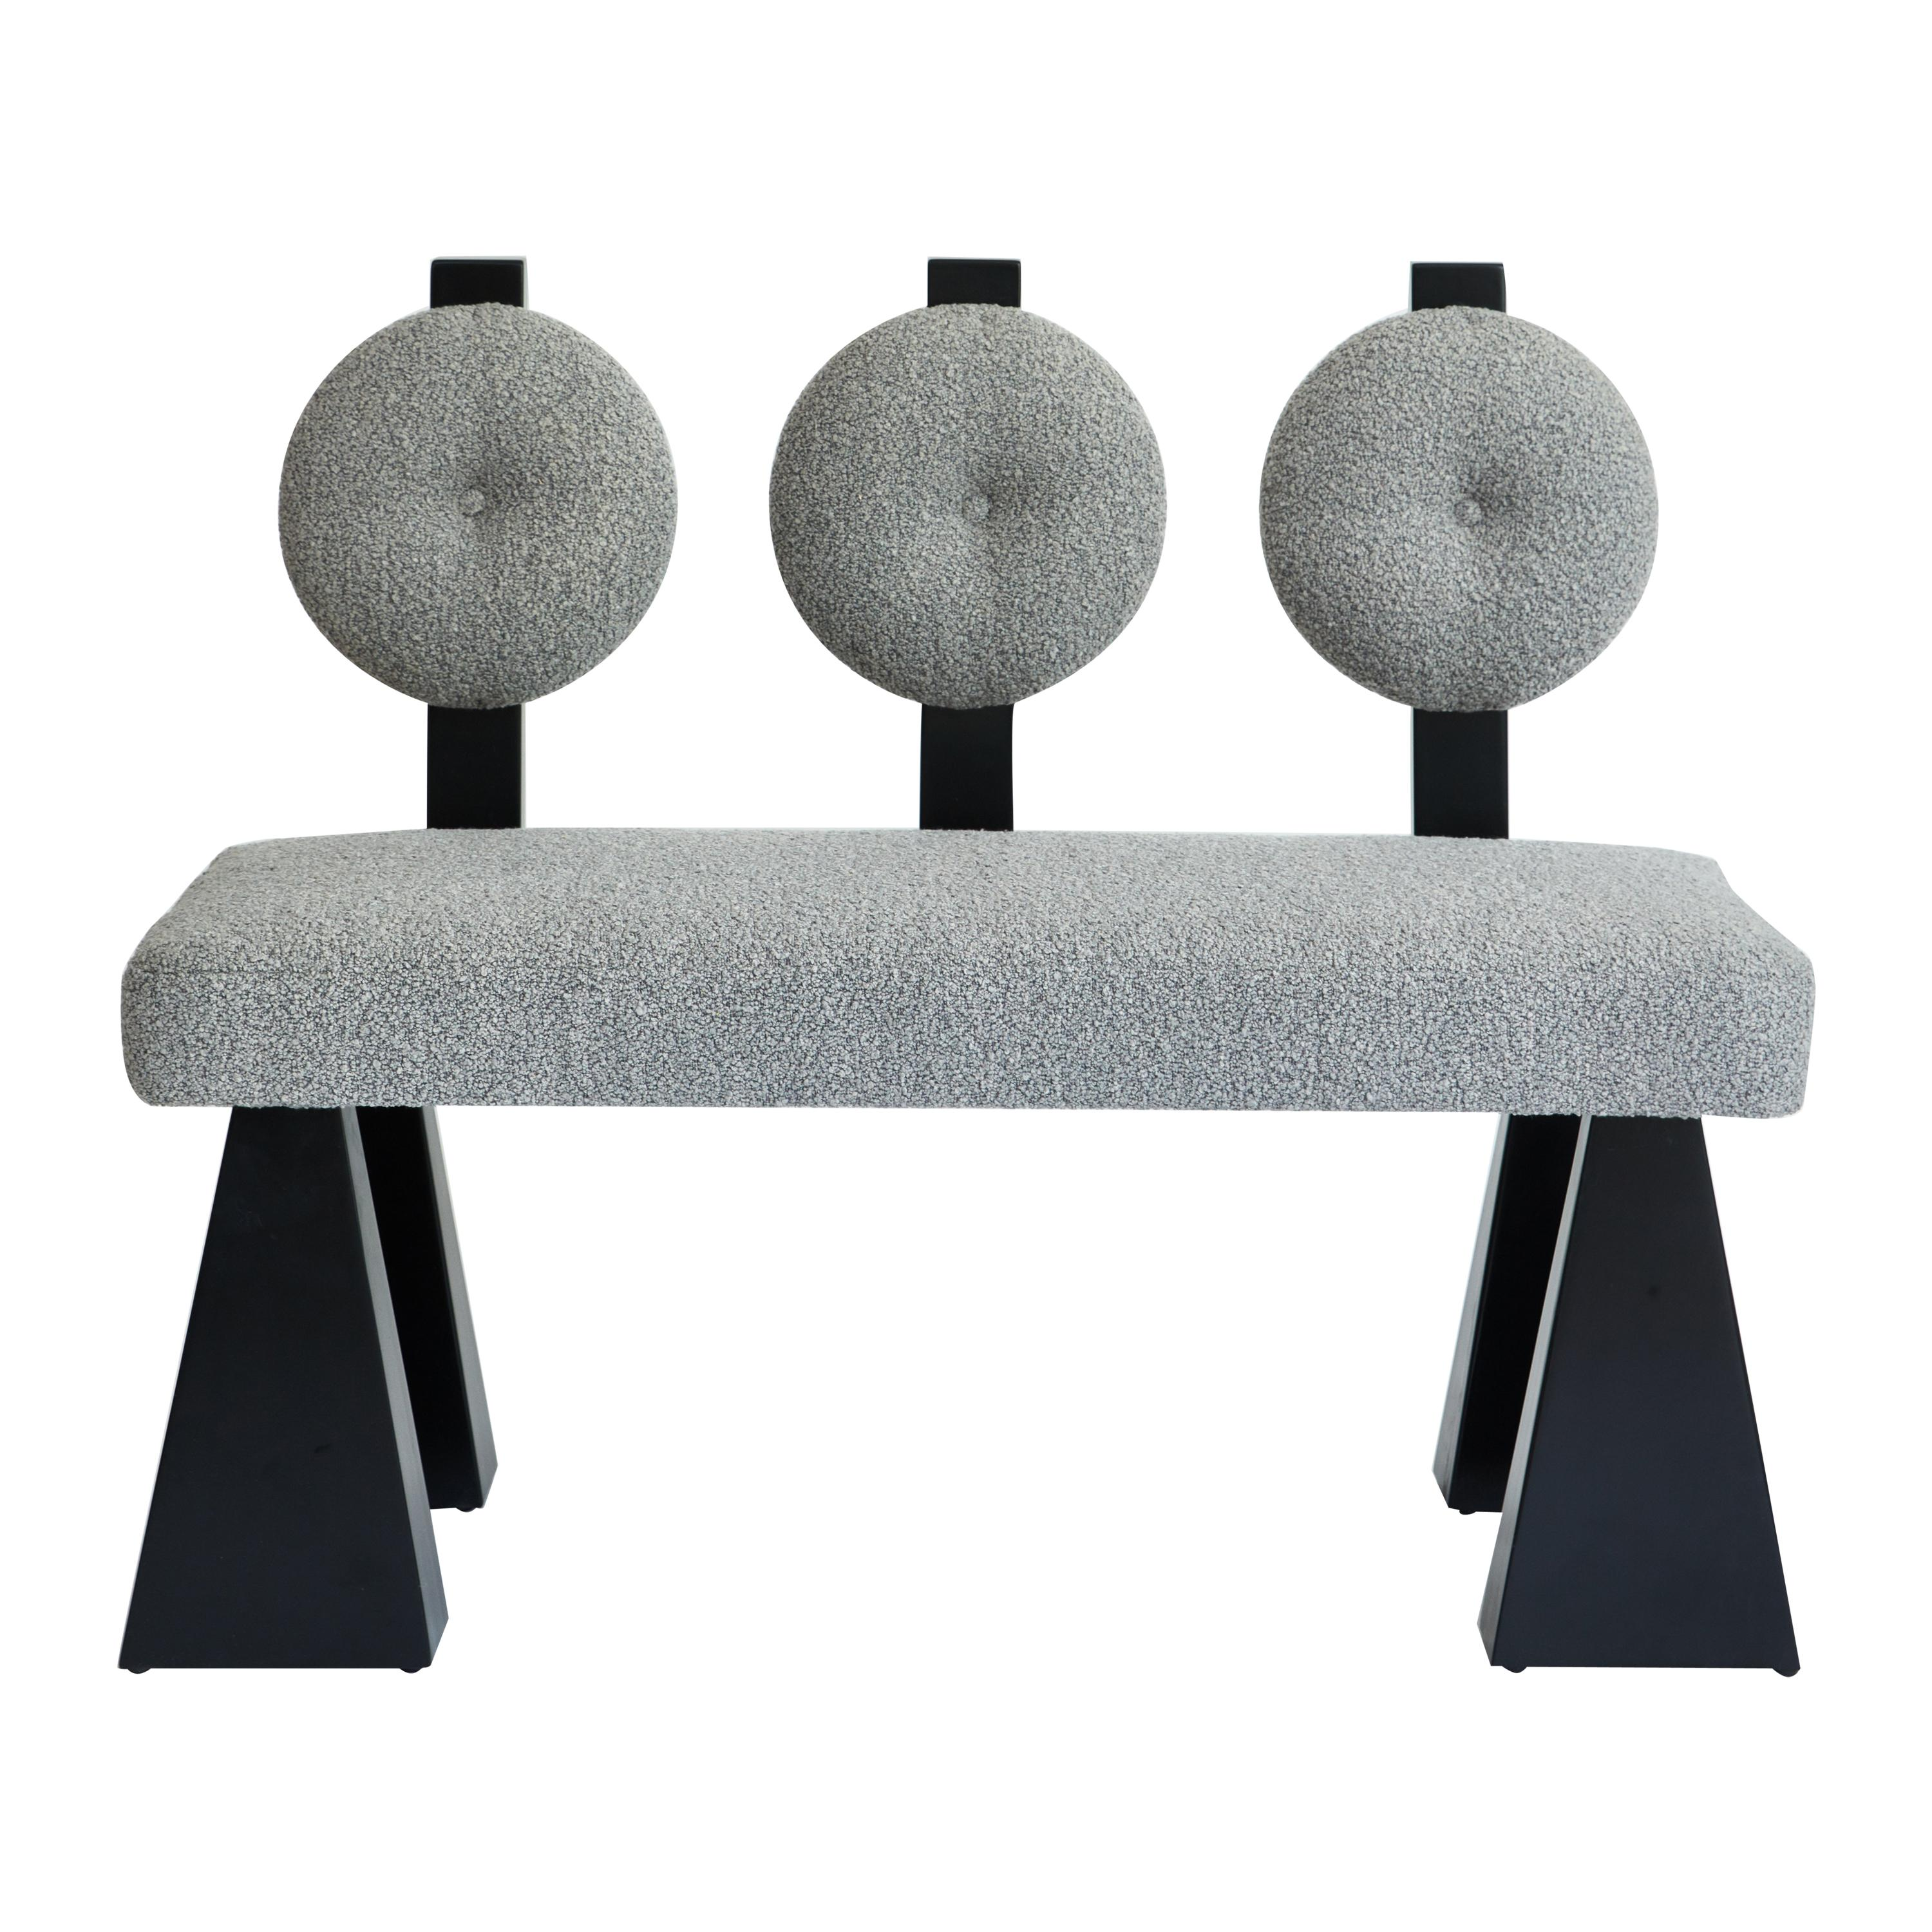 Lola Settee, Bouclé & Black Lacquered Wood Settee by Christian Siriano